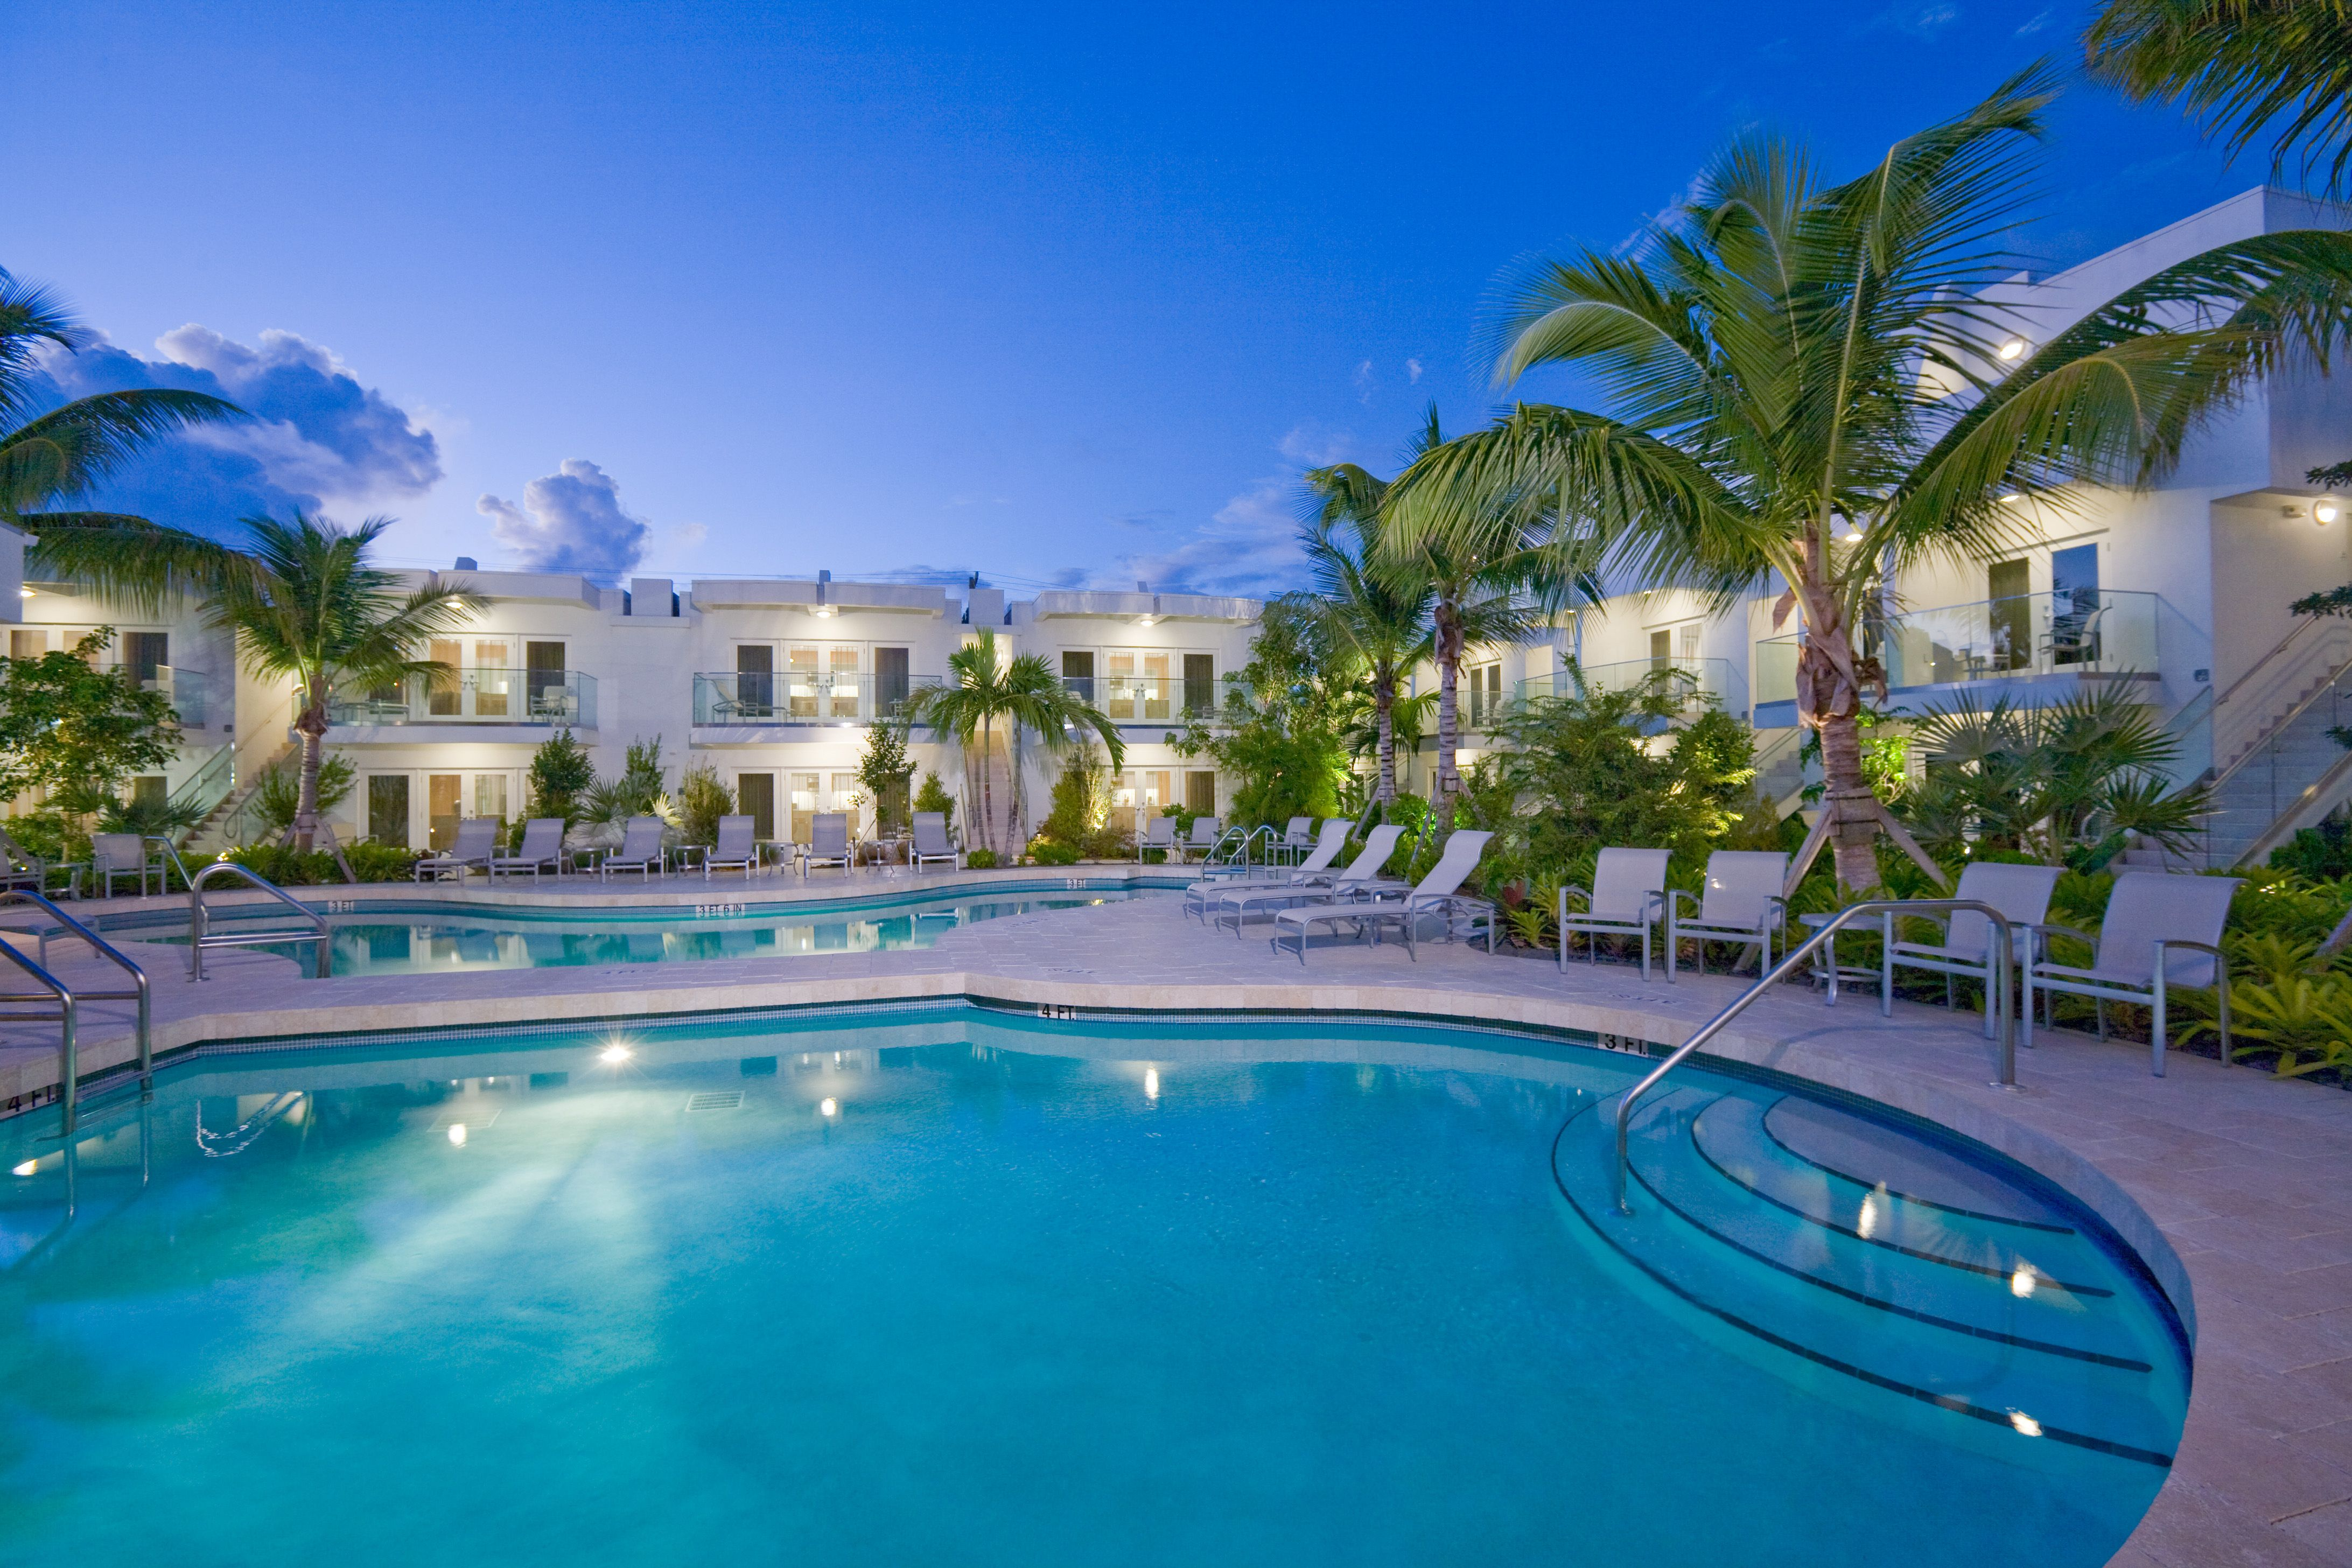 Stay At Santa Maria Suites Resort A Contemporary Key West Retreat With Sushi Restaurant Heated Pools Tropical Gardens And Beach Access Near C Reefs